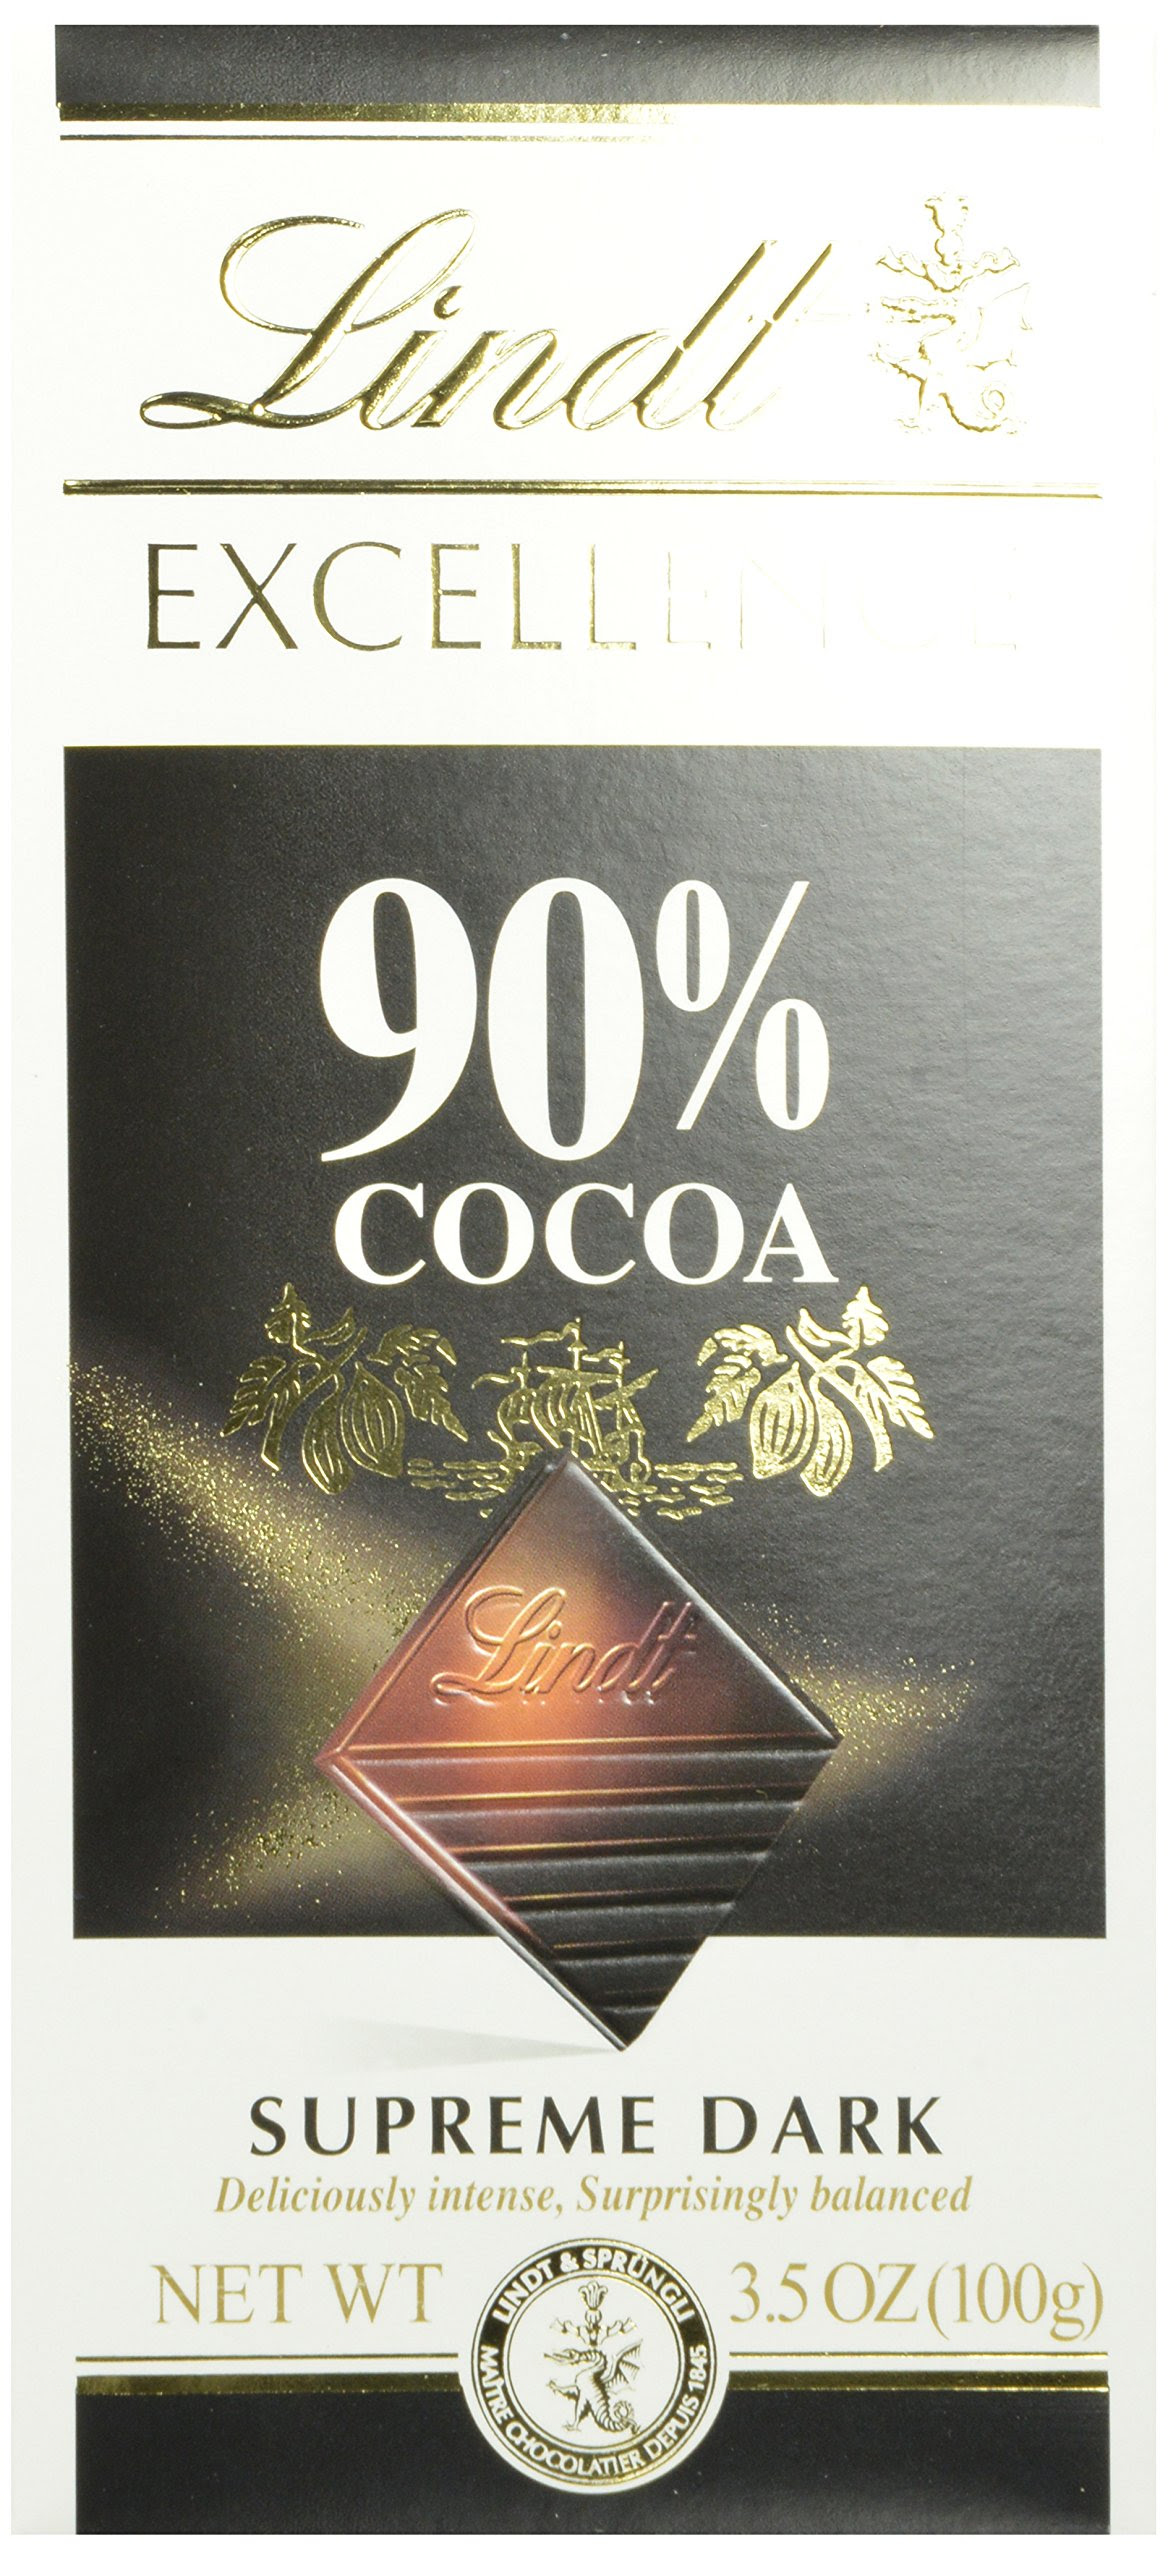 Lindt Excellence Supreme Dark Chocolate 90% Cocoa